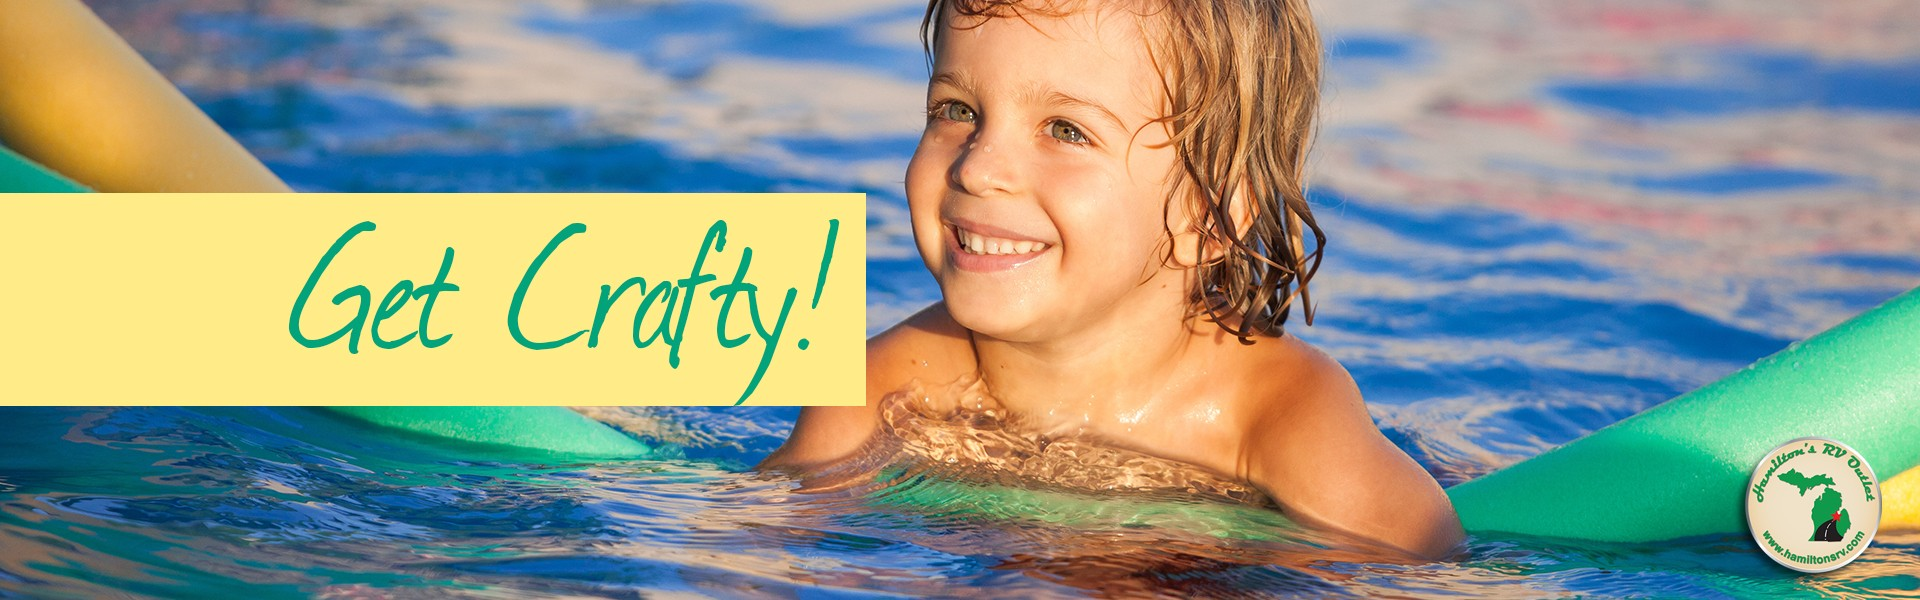 get-crafty-kid-using-pool-noodles-while-swimming